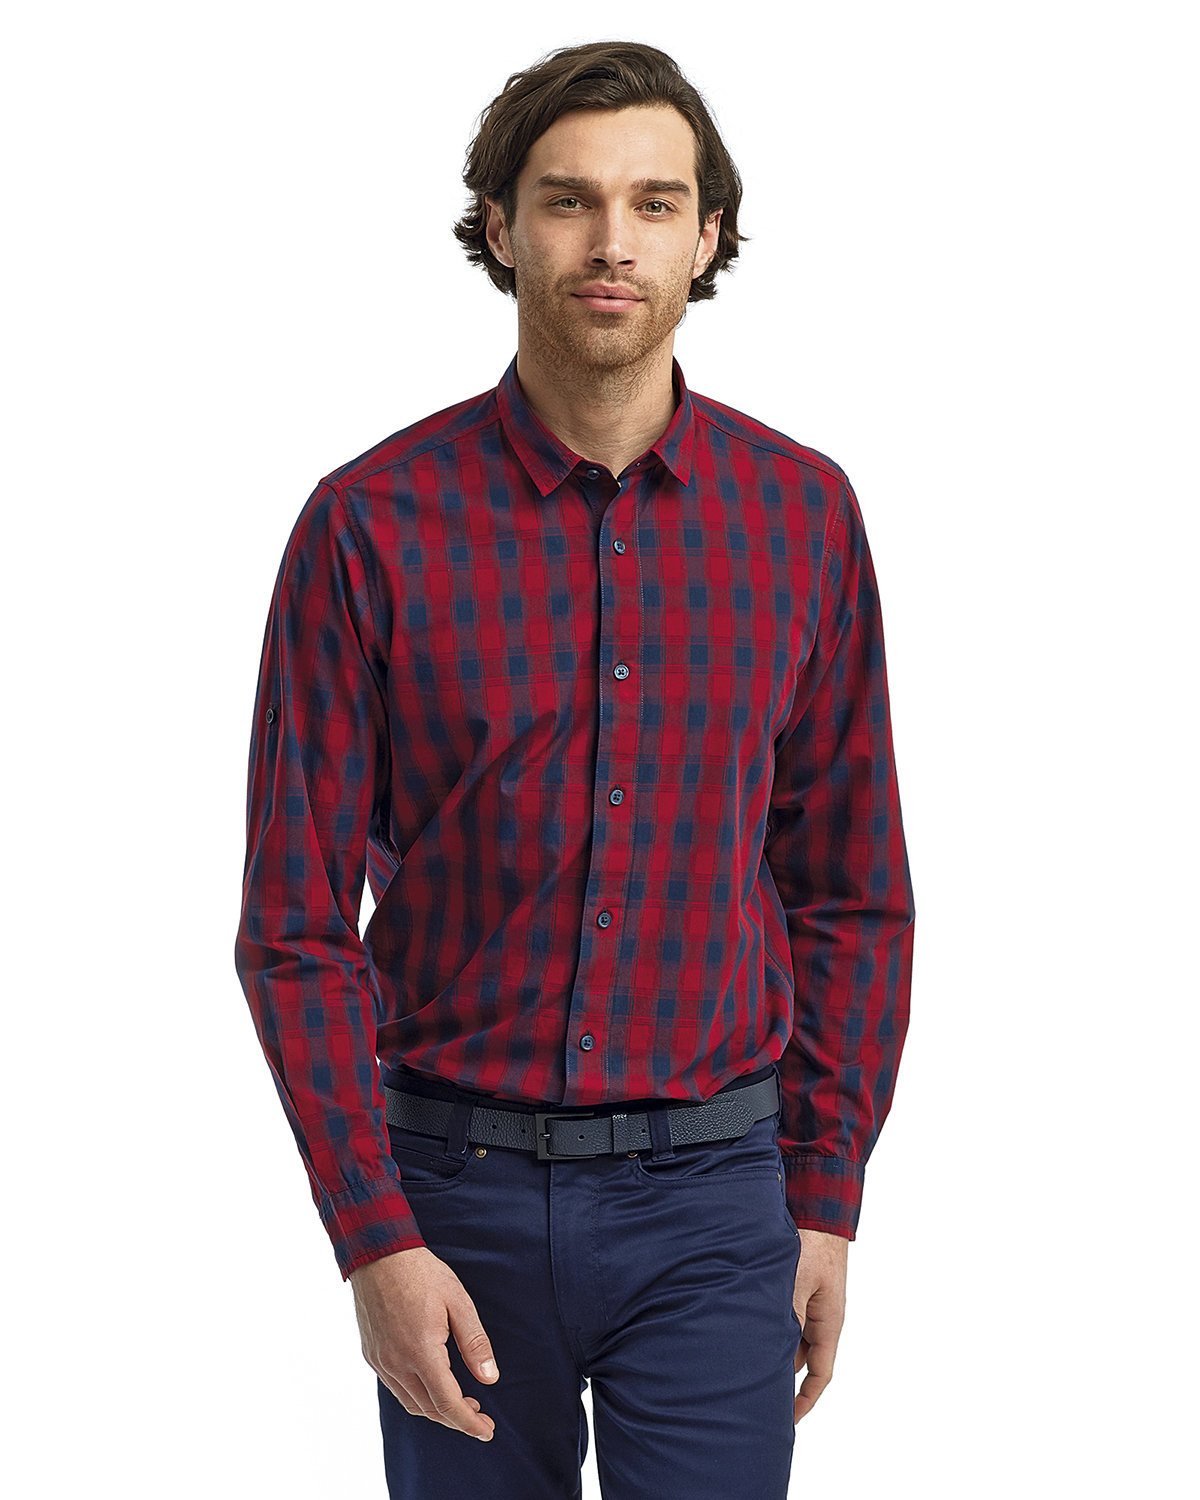 Artisan Collection by Reprime Men's Mulligan Check Long-Sleeve Cotton Shirt RED/ NAVY